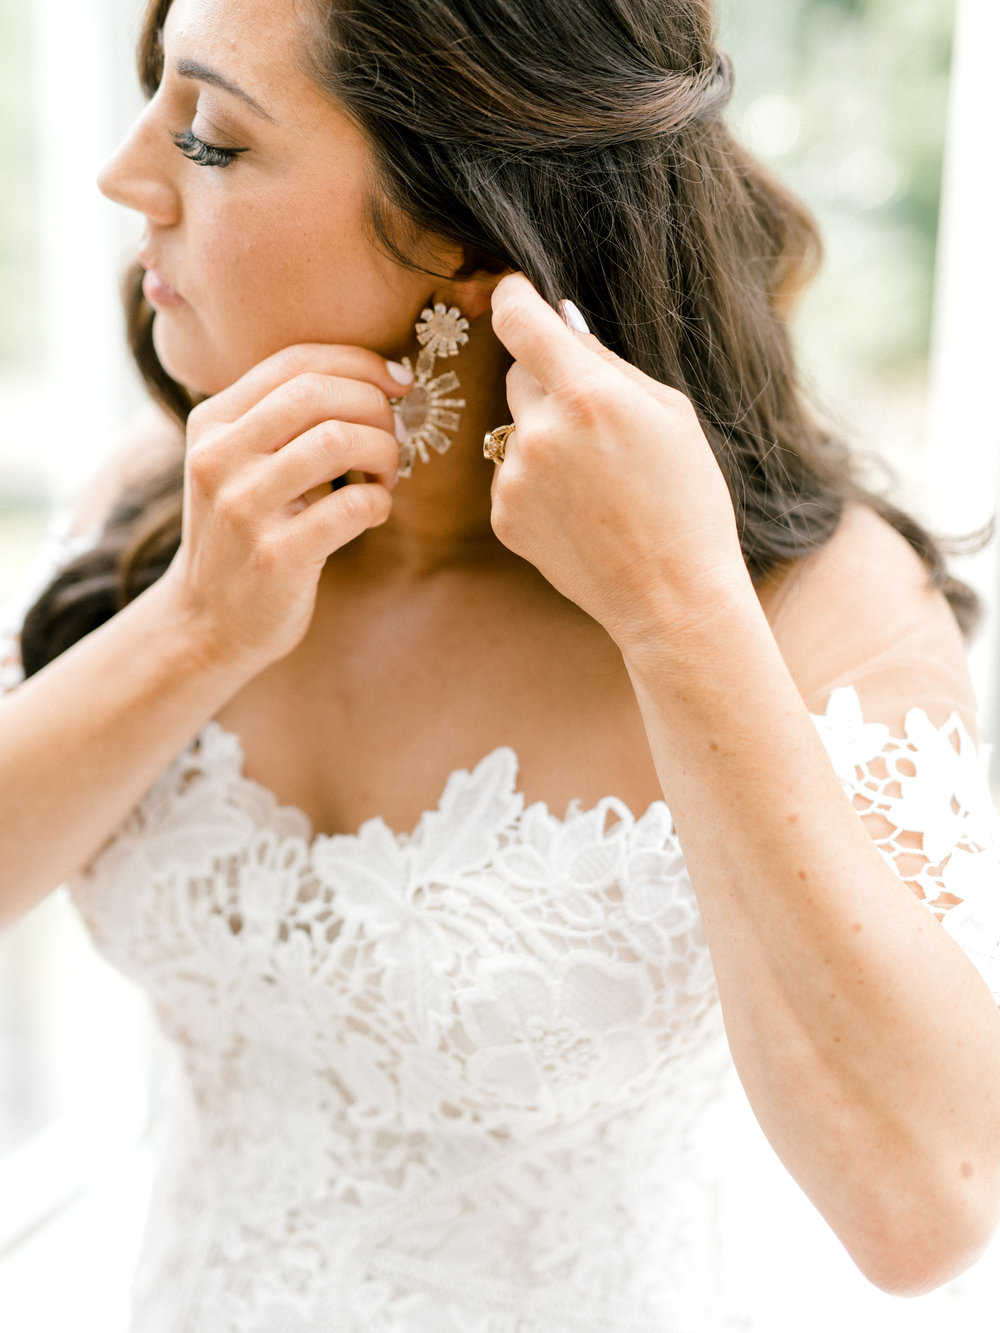 Lindsey's bold starburst earrings paired so well with her classic lace Lover's Society gown for her colorful and modern wedding day at Hotel du Village.